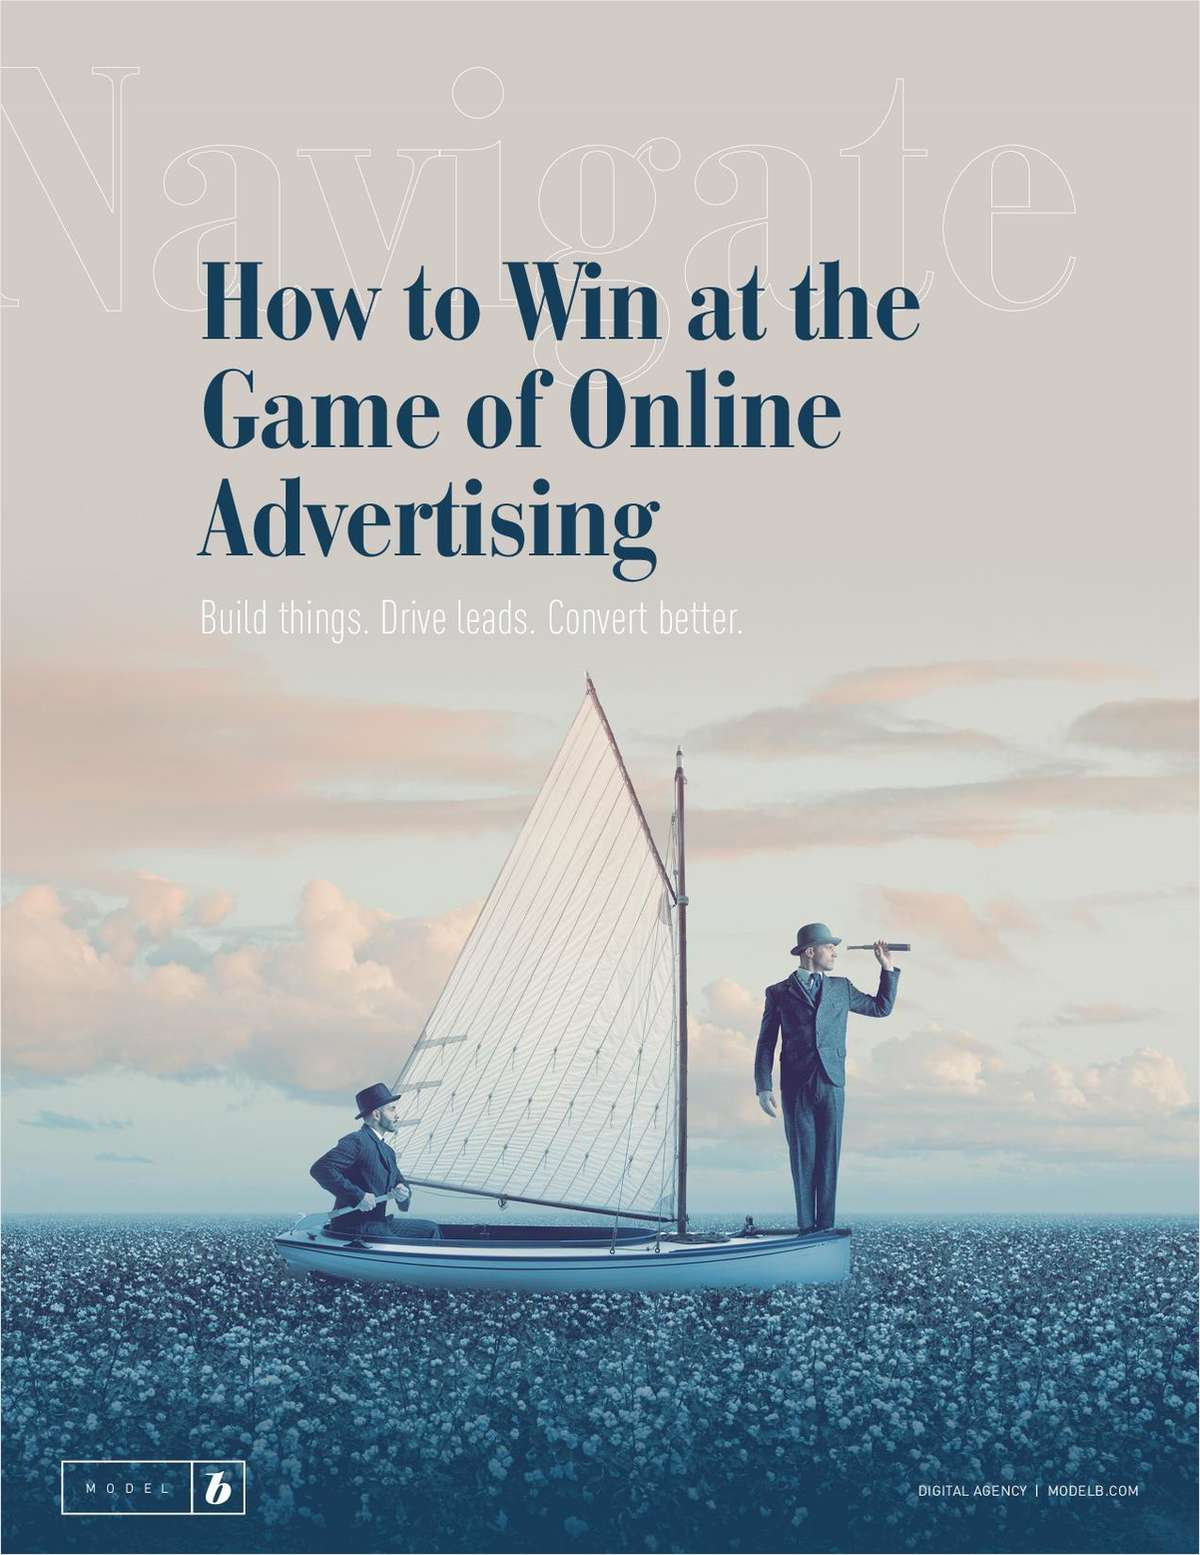 How to Win at the Game of Online Advertising